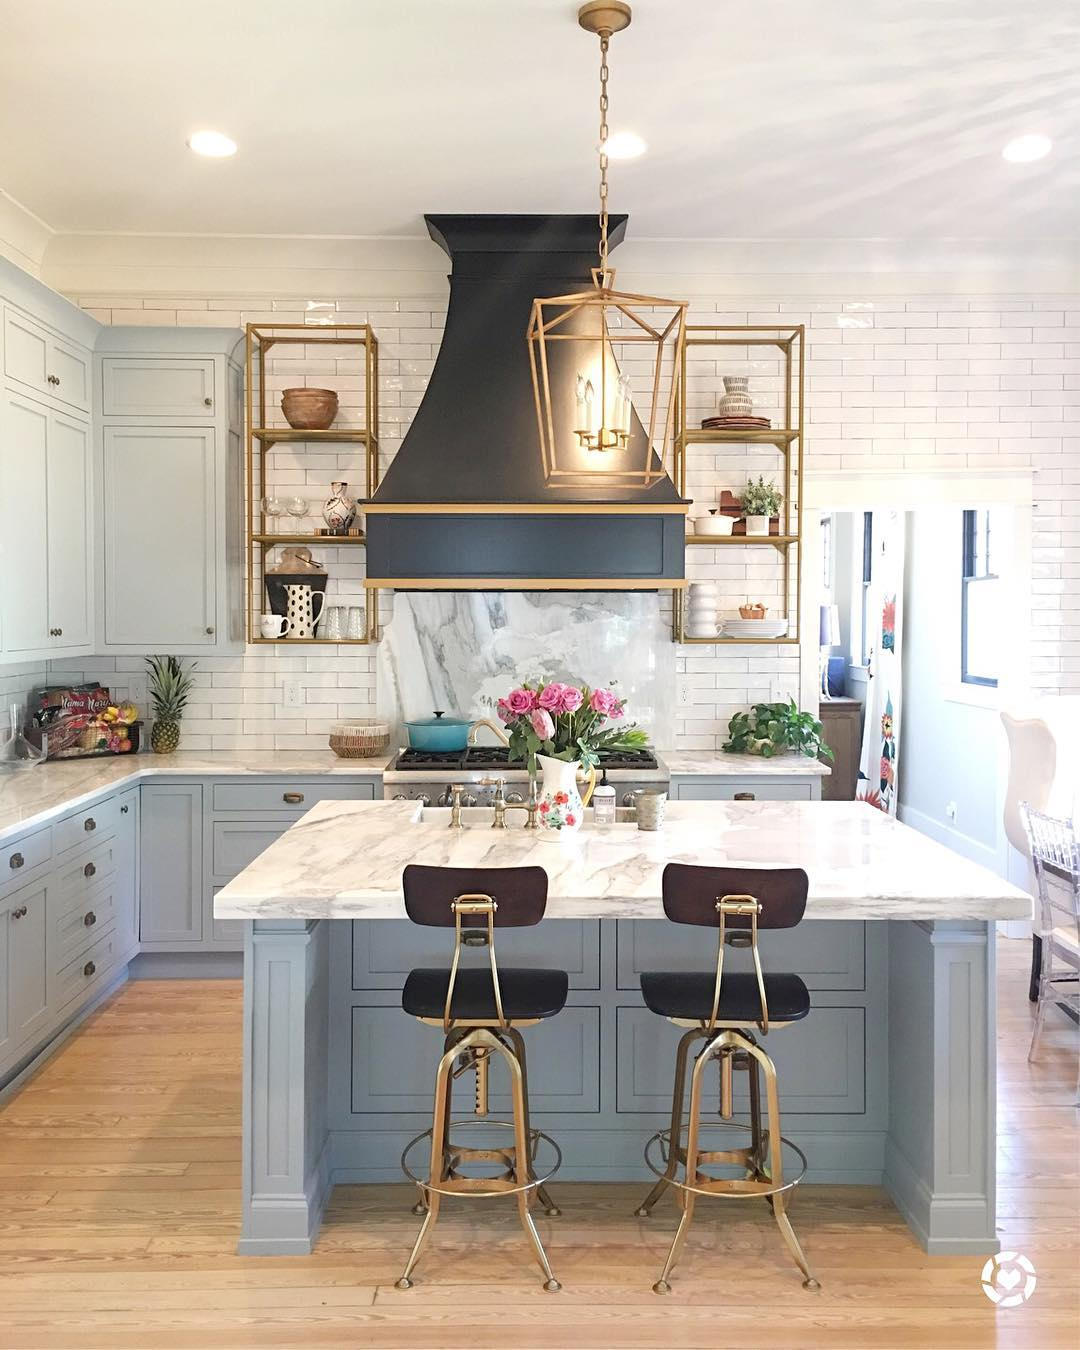 Light Blue Paint, Marble And Brass Kitchen Design